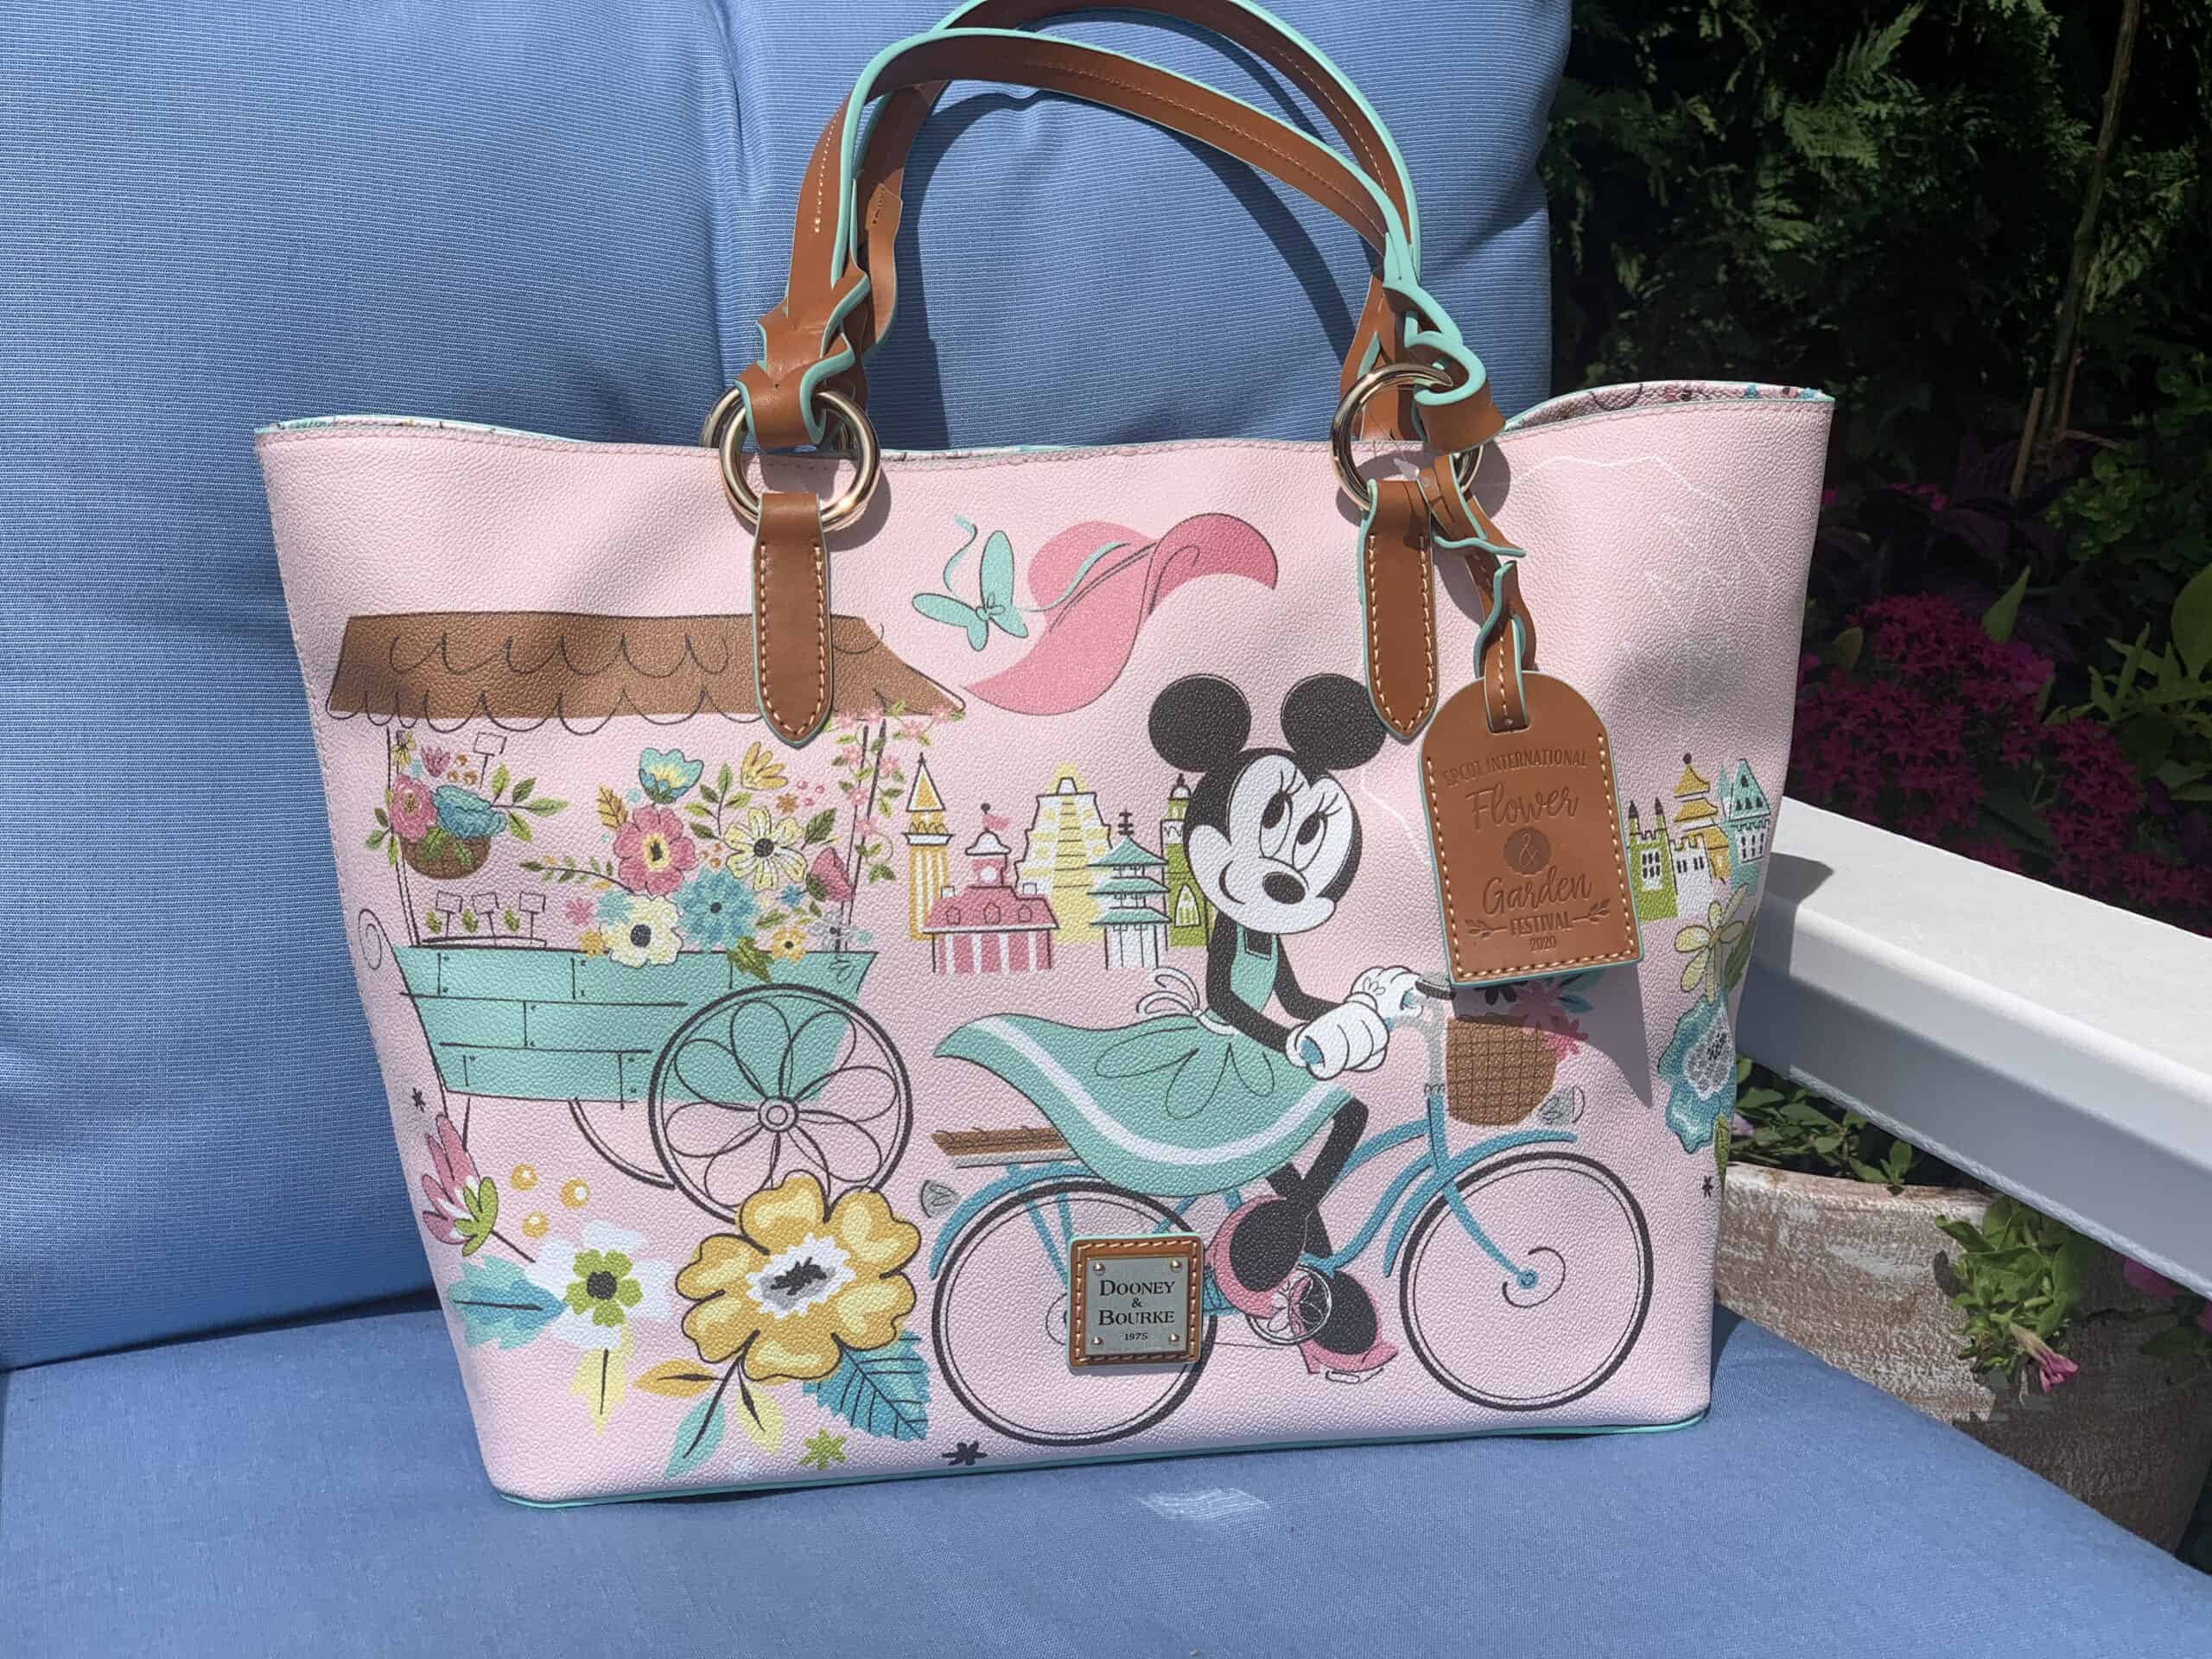 Flower and Garden Festival 2020 Minnie Mouse Tote